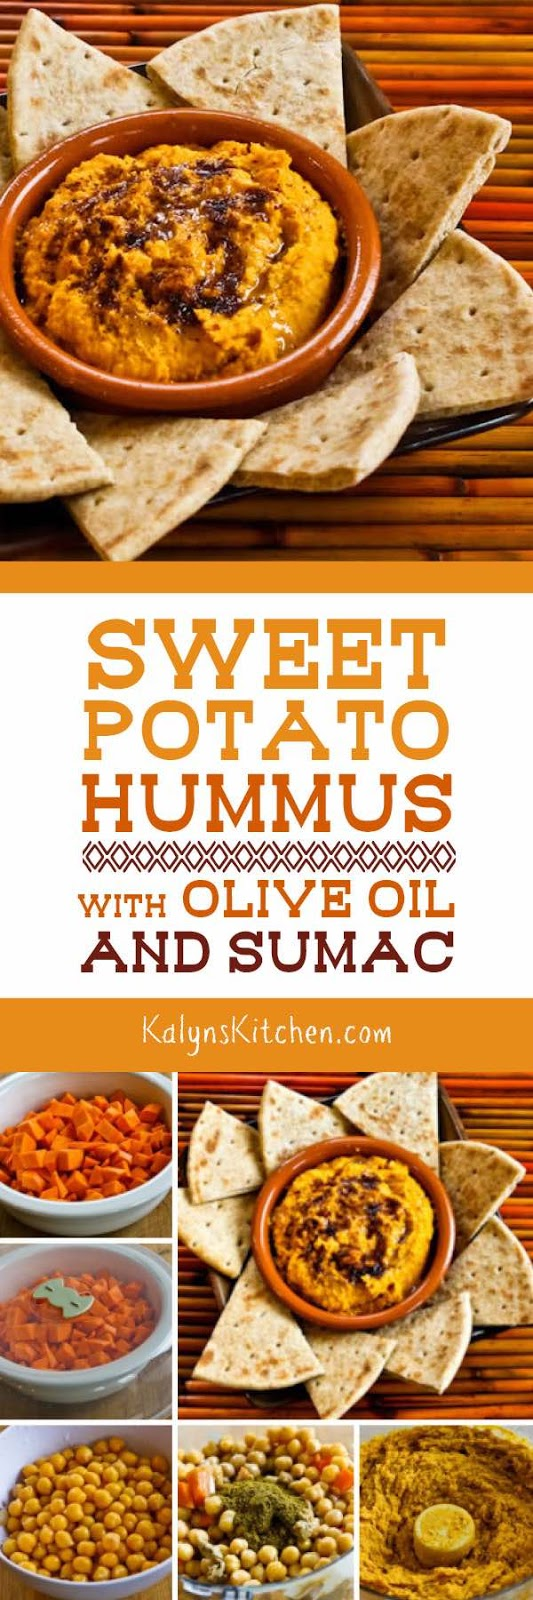 Sweet Potato Hummus with Olive Oil and Sumac - Kalyn's Kitchen